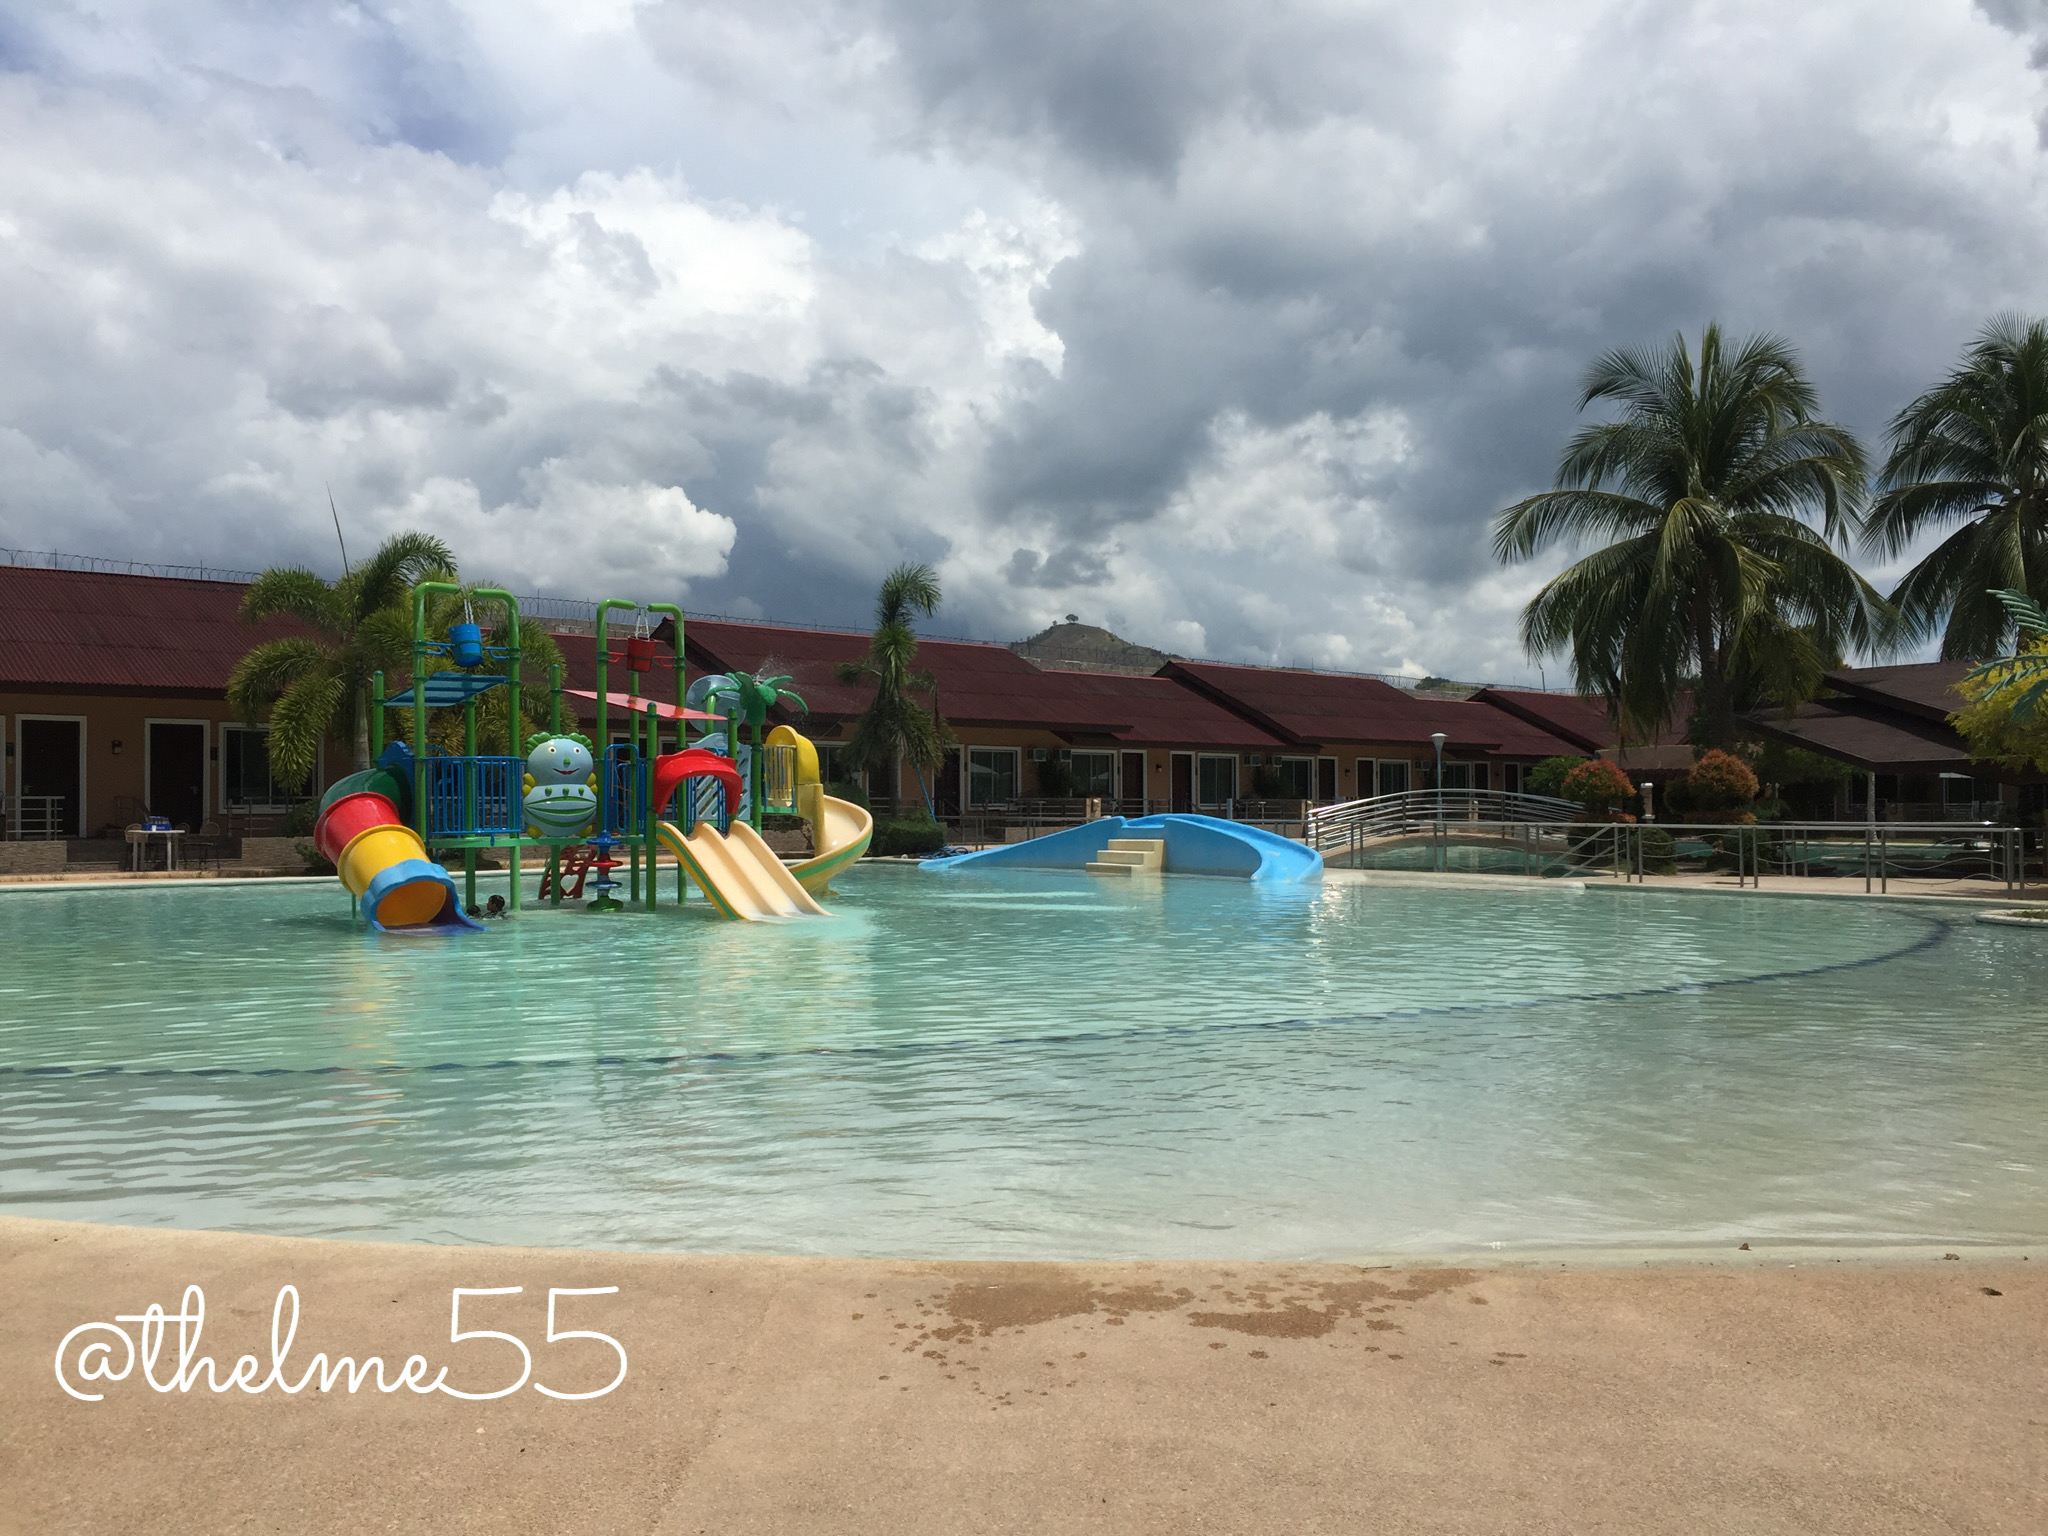 Amontay beach resort swimming pool.